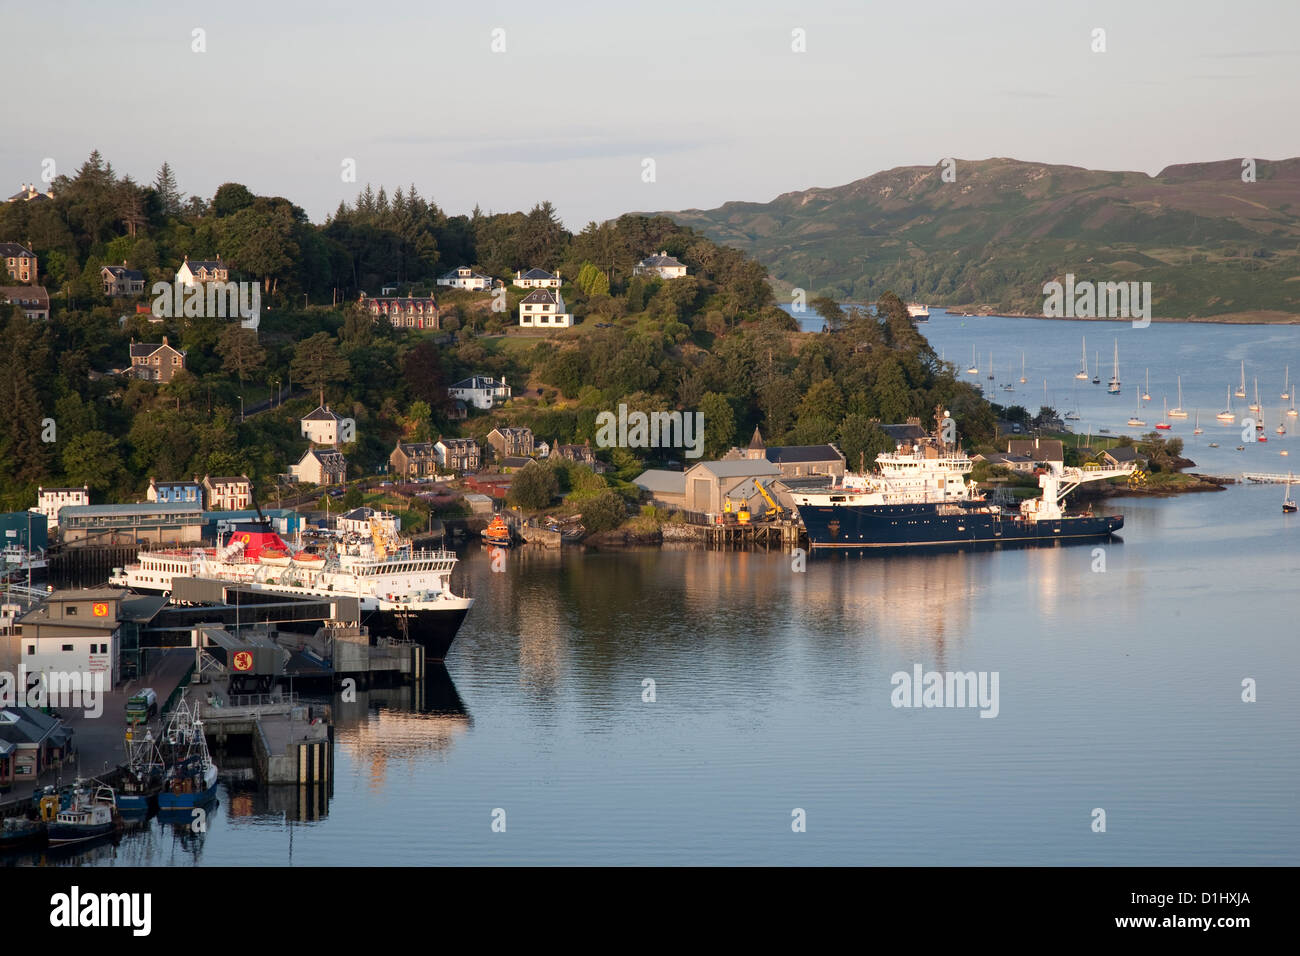 Boats in Oban Harbour, Scotland - Stock Image